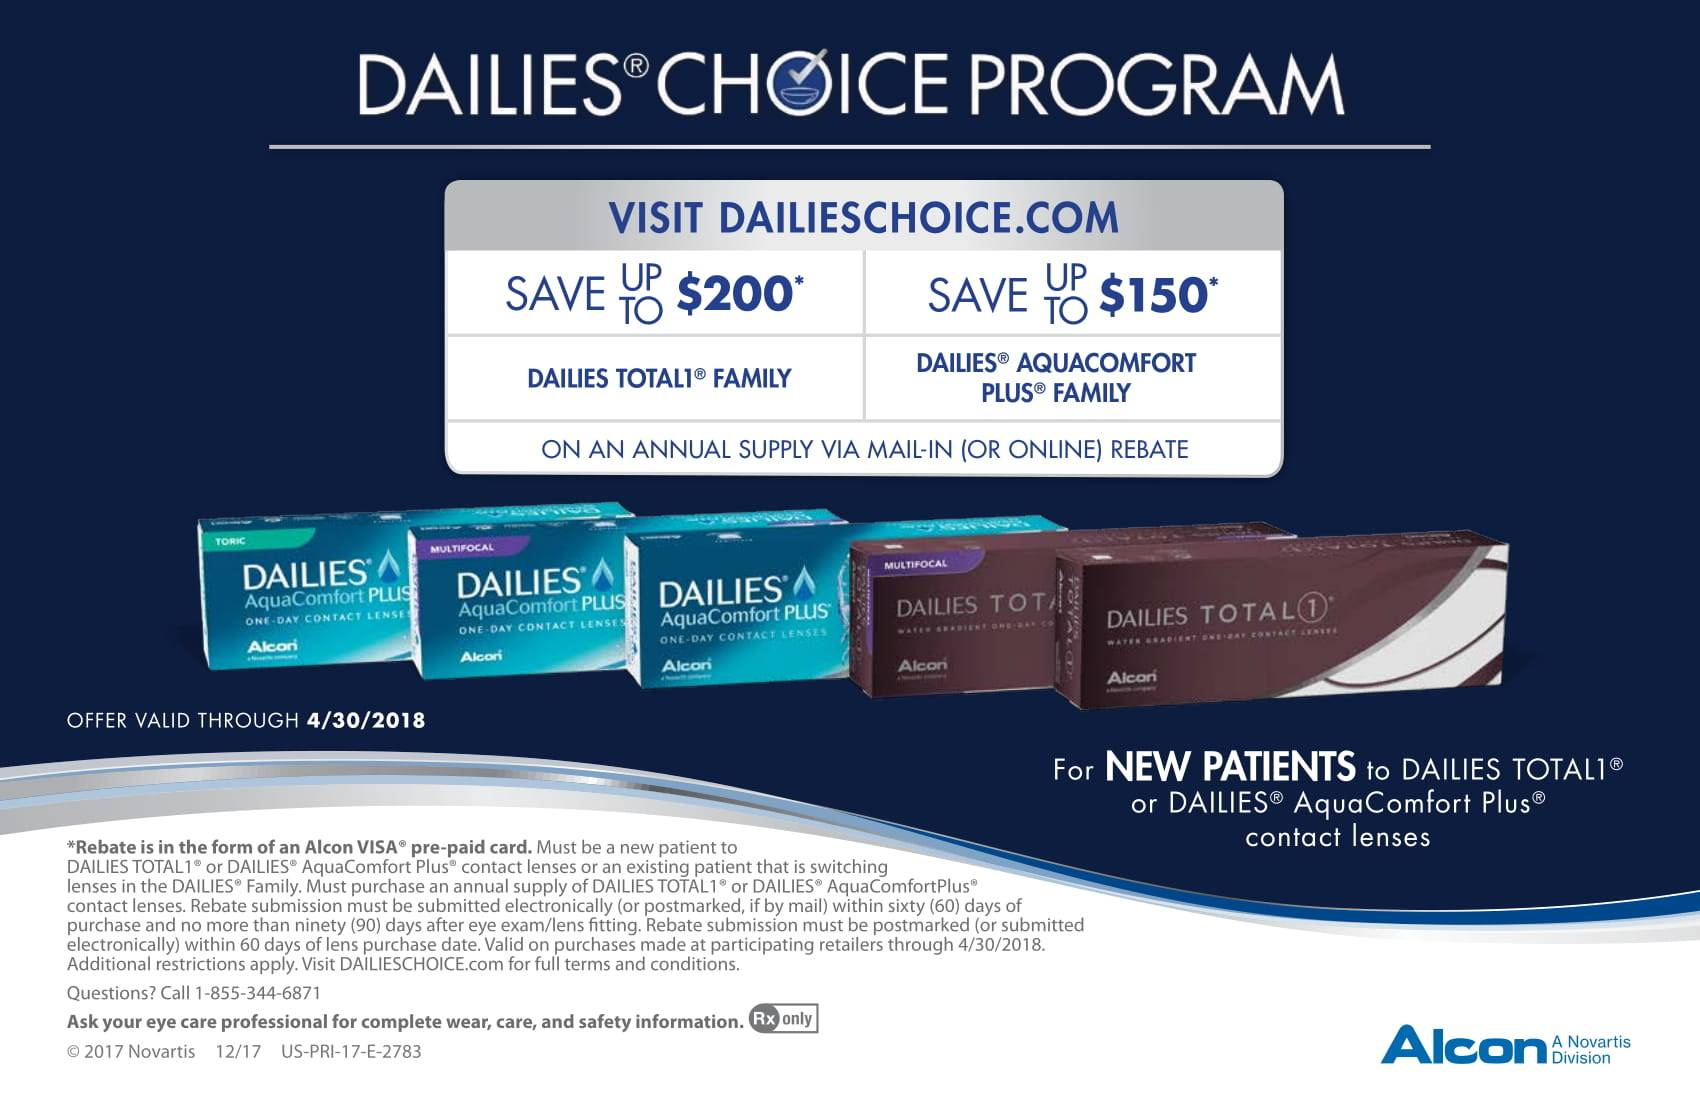 Save up to $200 on Alcon Dailies Contact Lenses